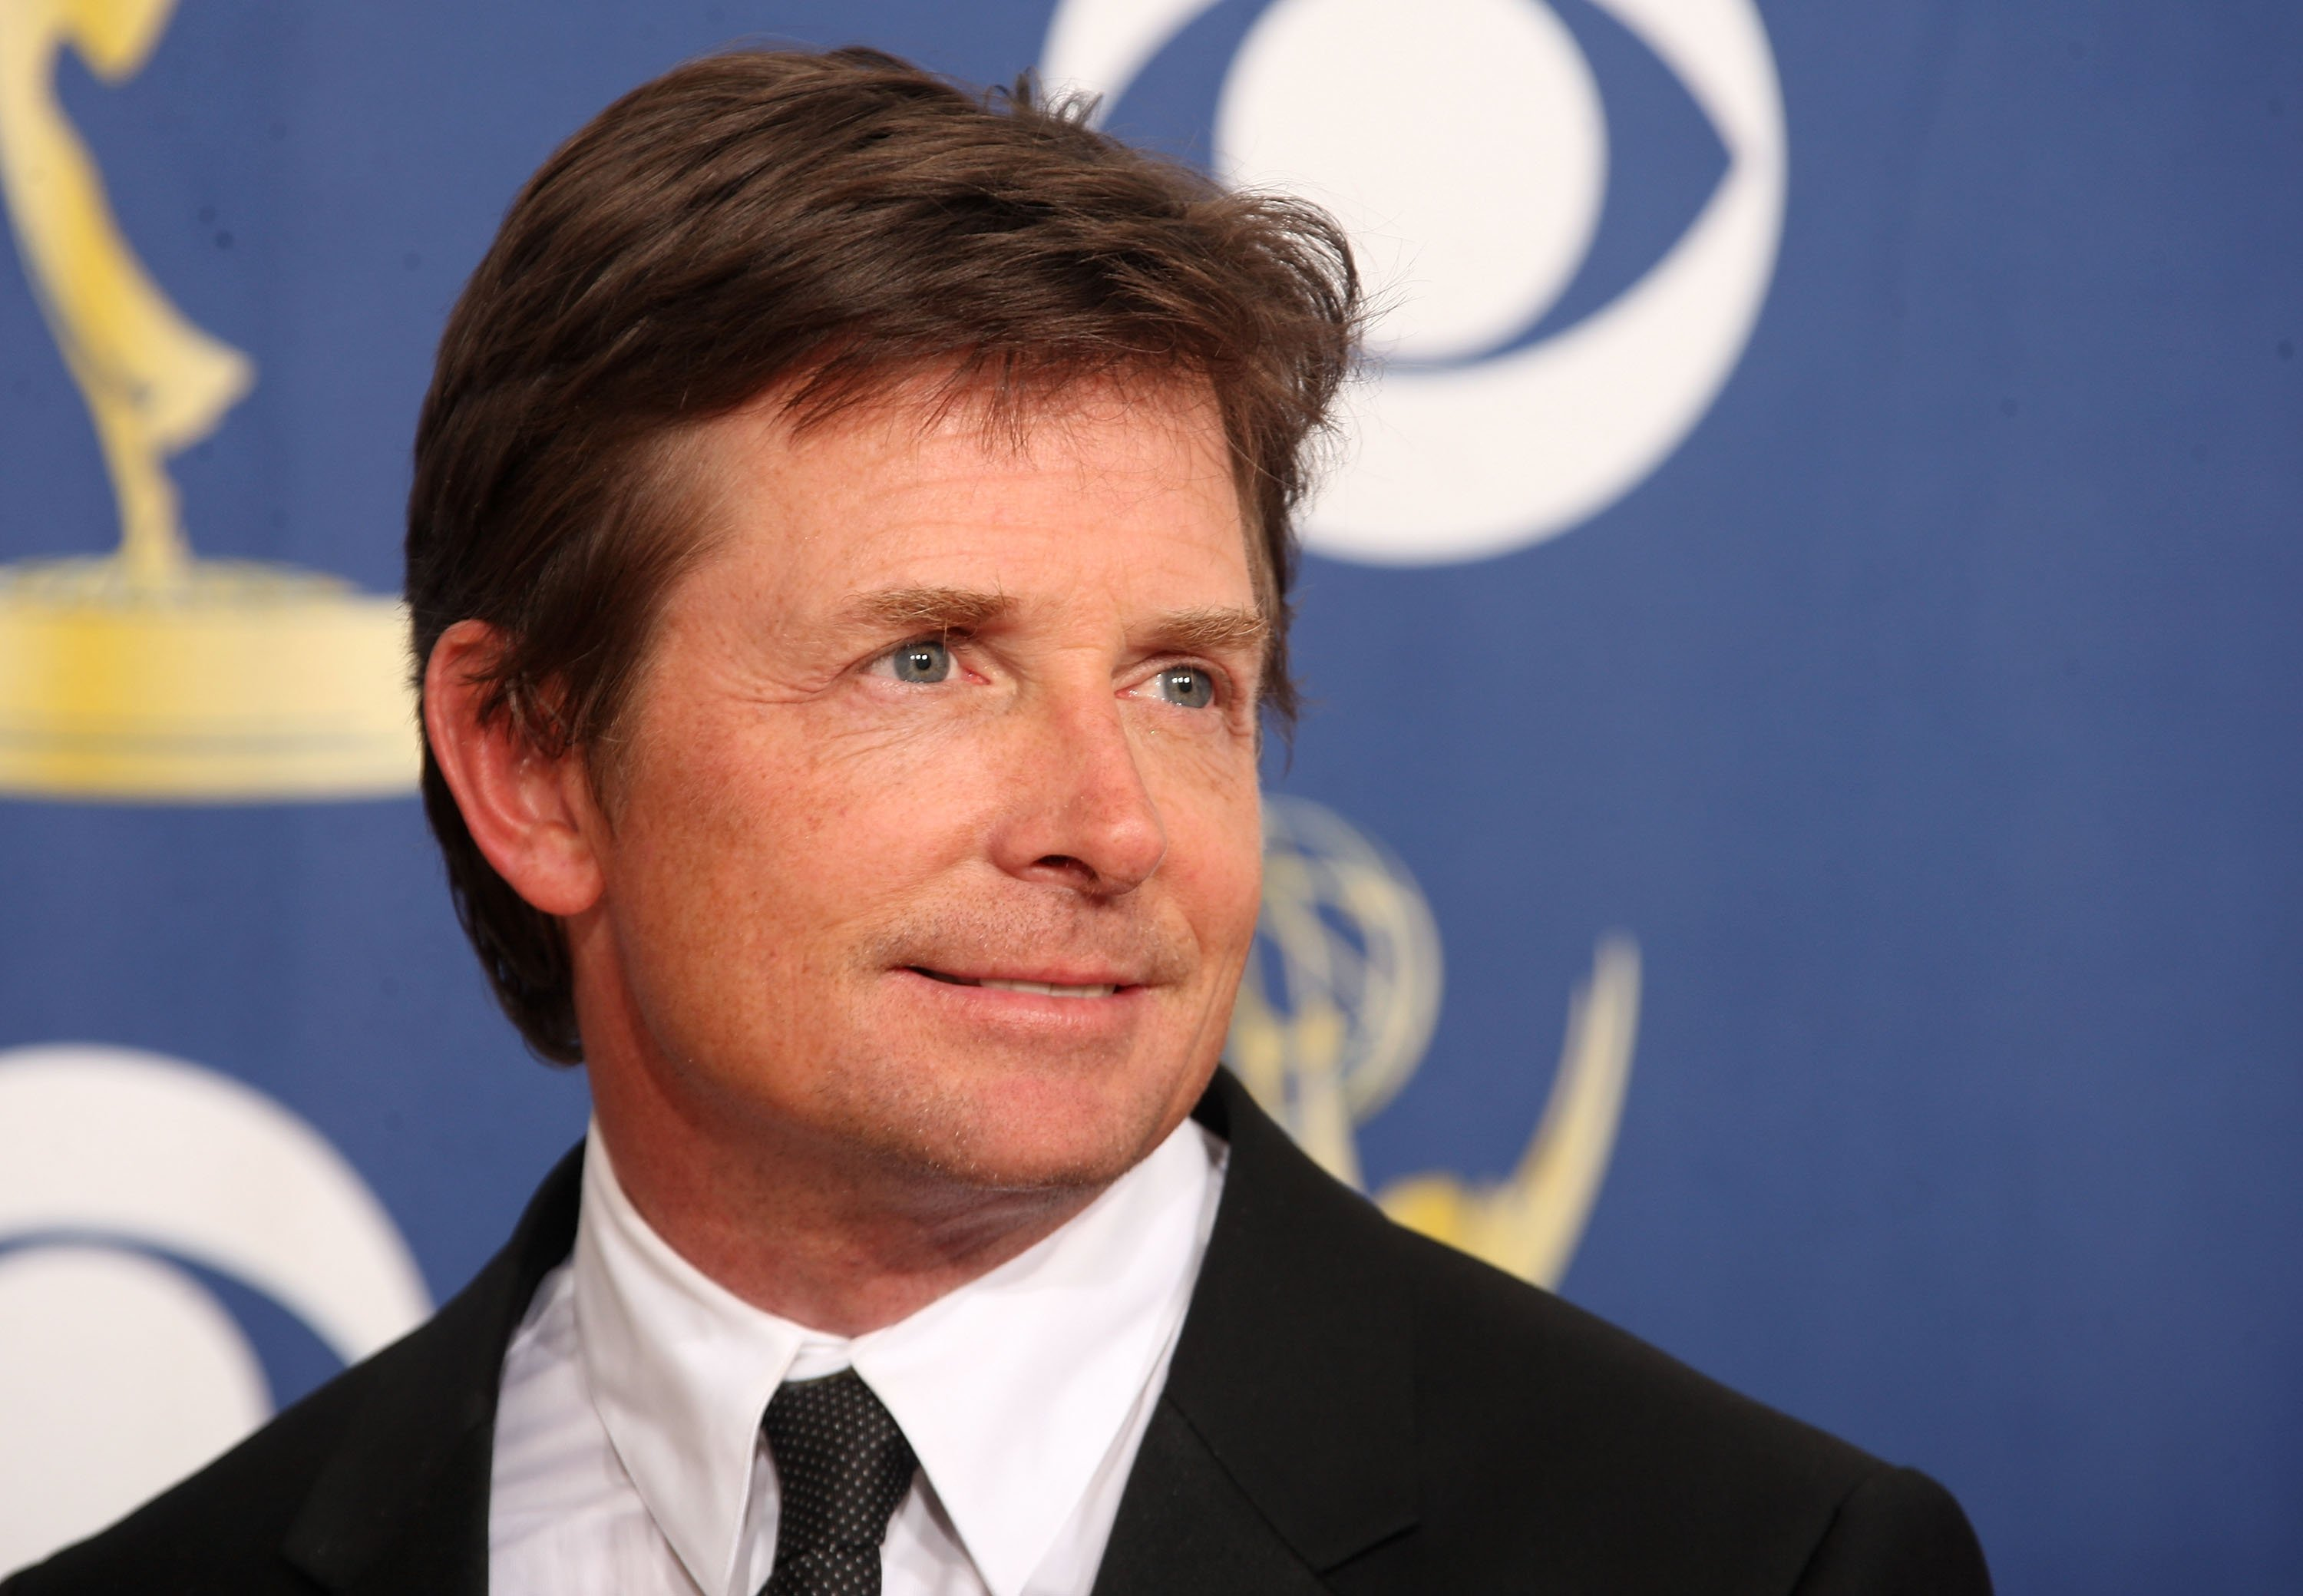 Michael J. Fox at the 61st Primetime Emmy Awards held at the Nokia Theatre on September 20, 2009. | Photo: GettyImages